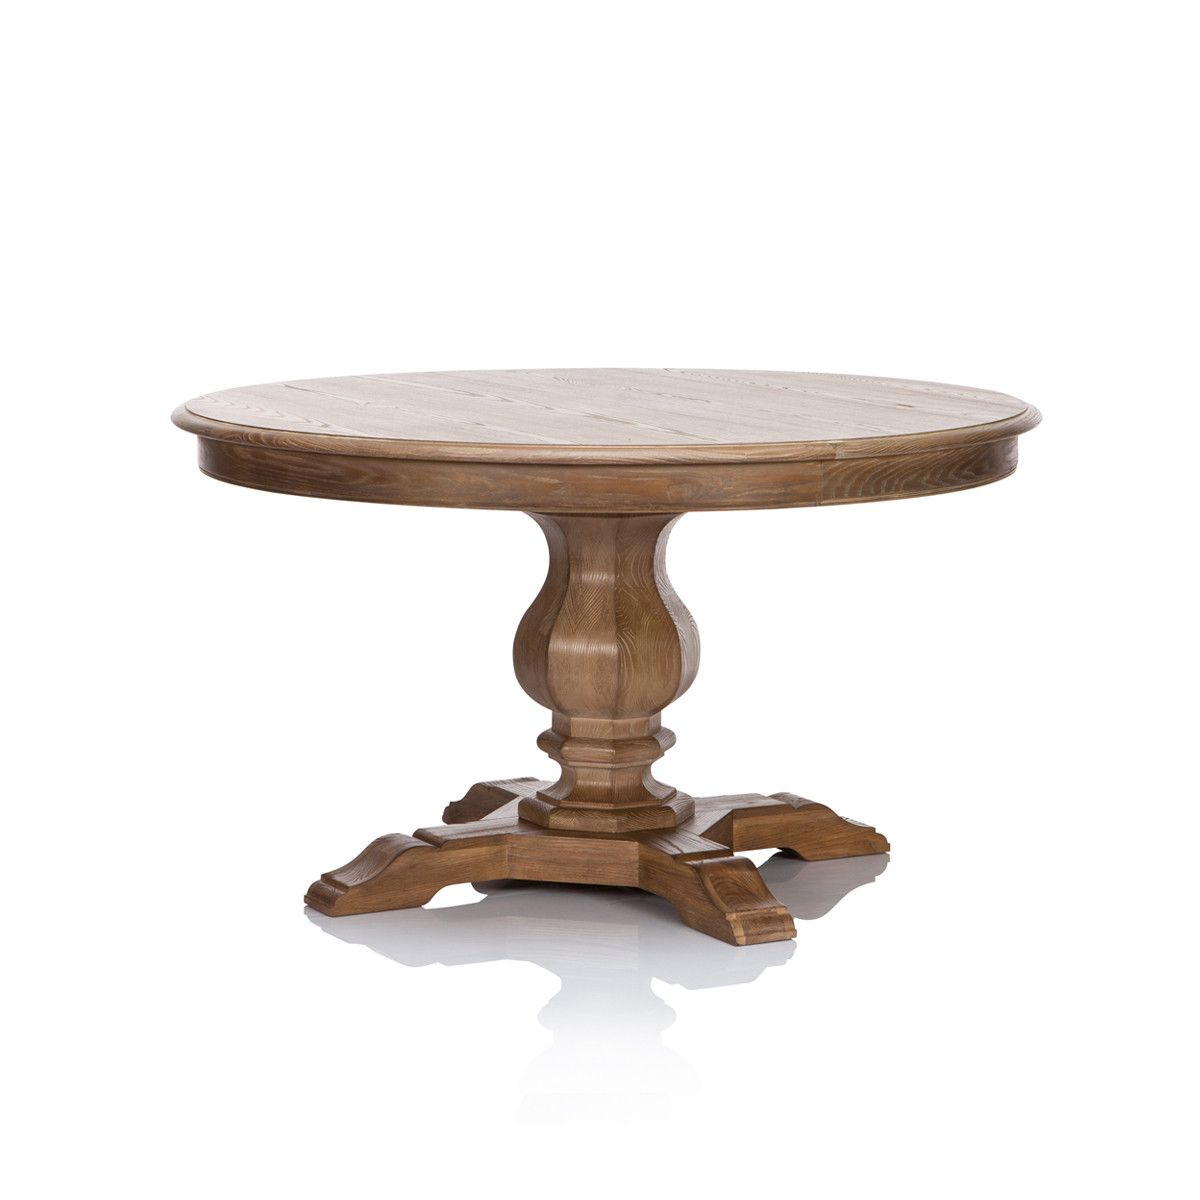 Dutch Round Dining Table - Max Sparrow | Decorating ideas ...